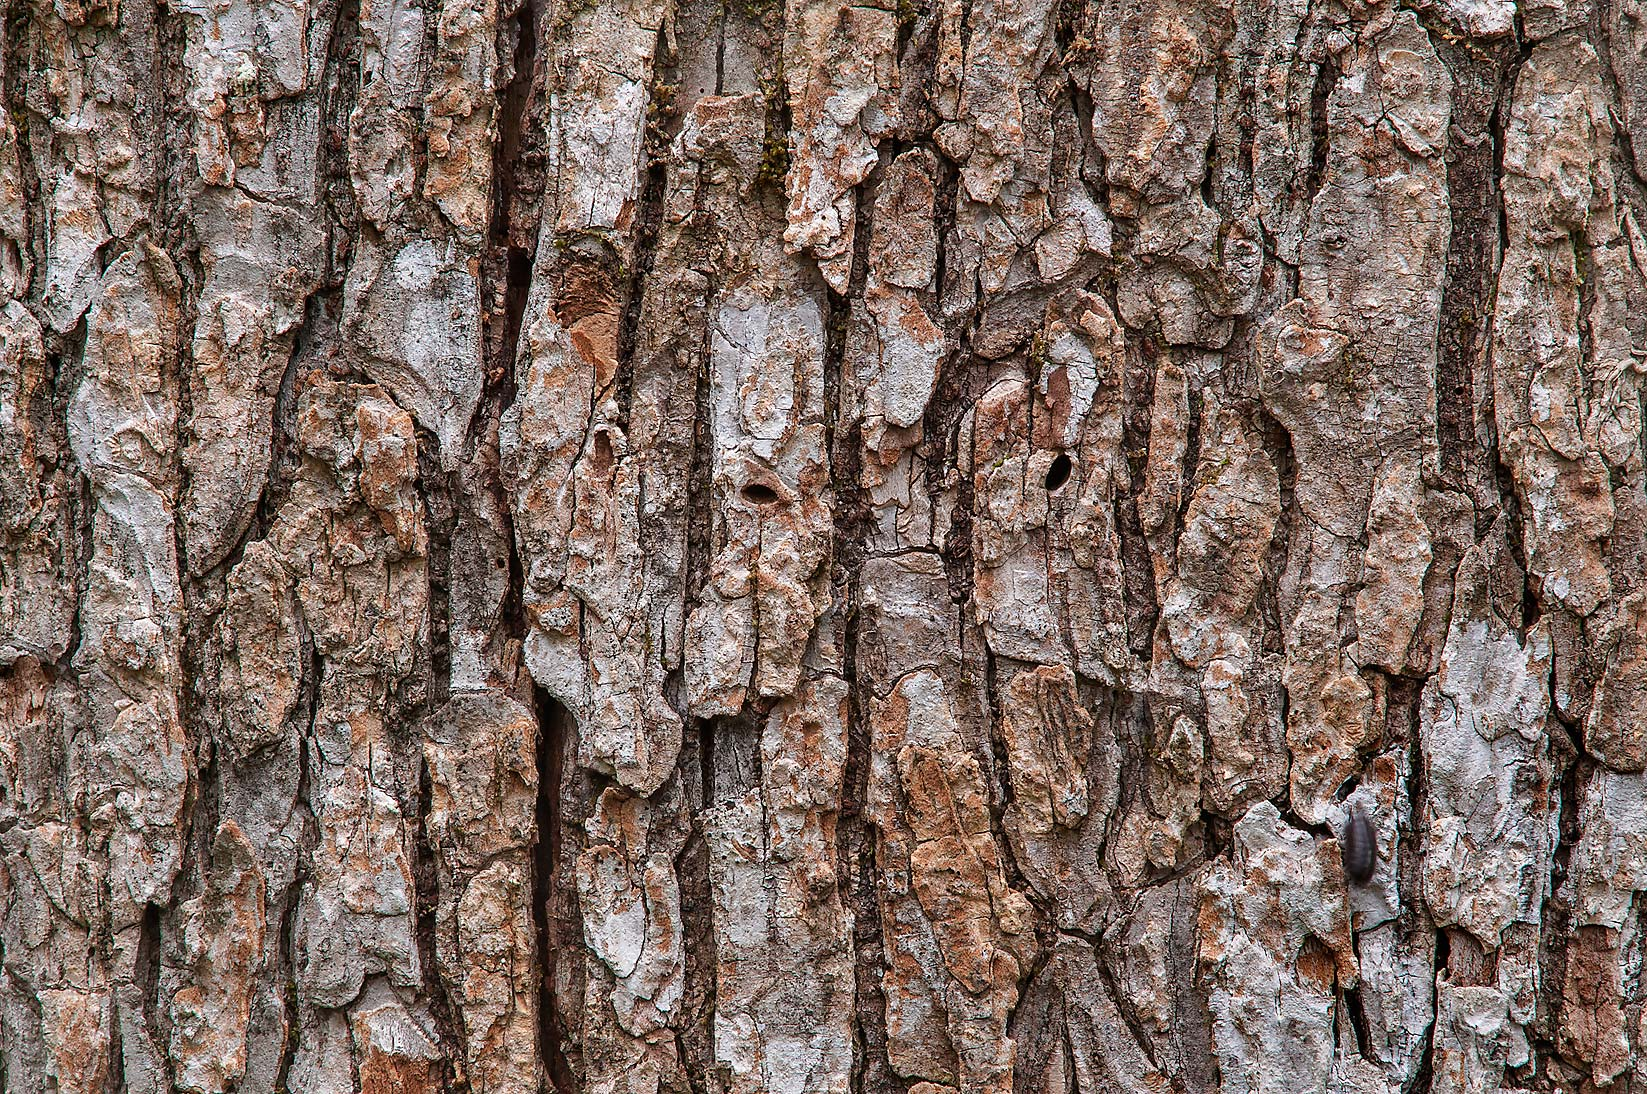 Bark of a tree on Racoon Run Trail in Lick Creek Park. College Station, Texas